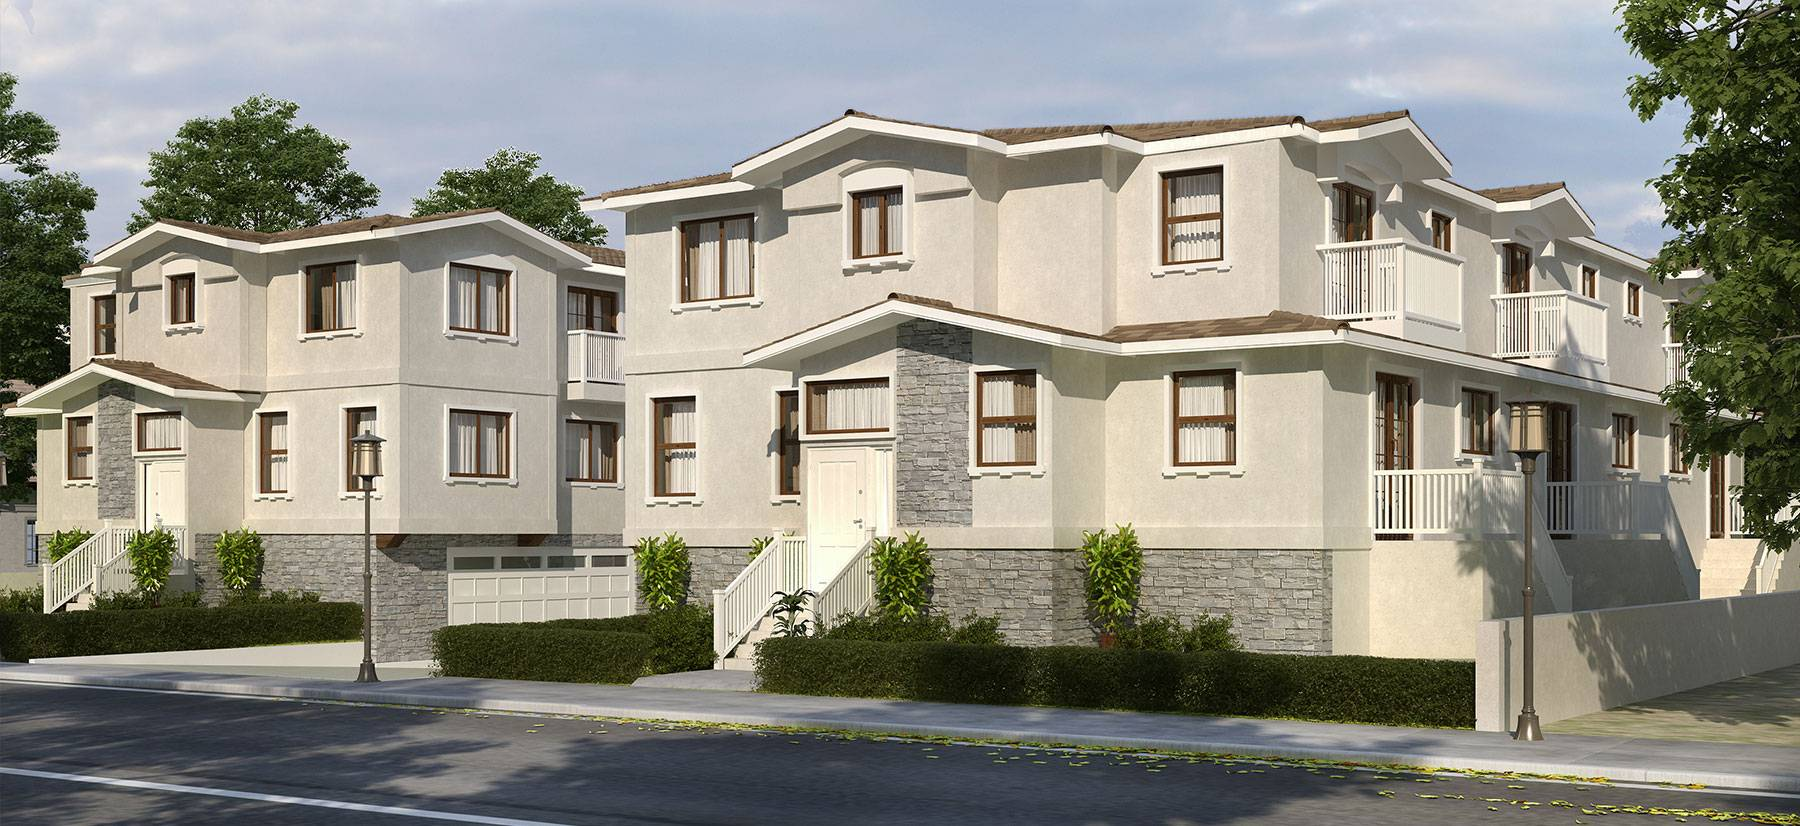 sample multi-family housing project by the City government of San Diego